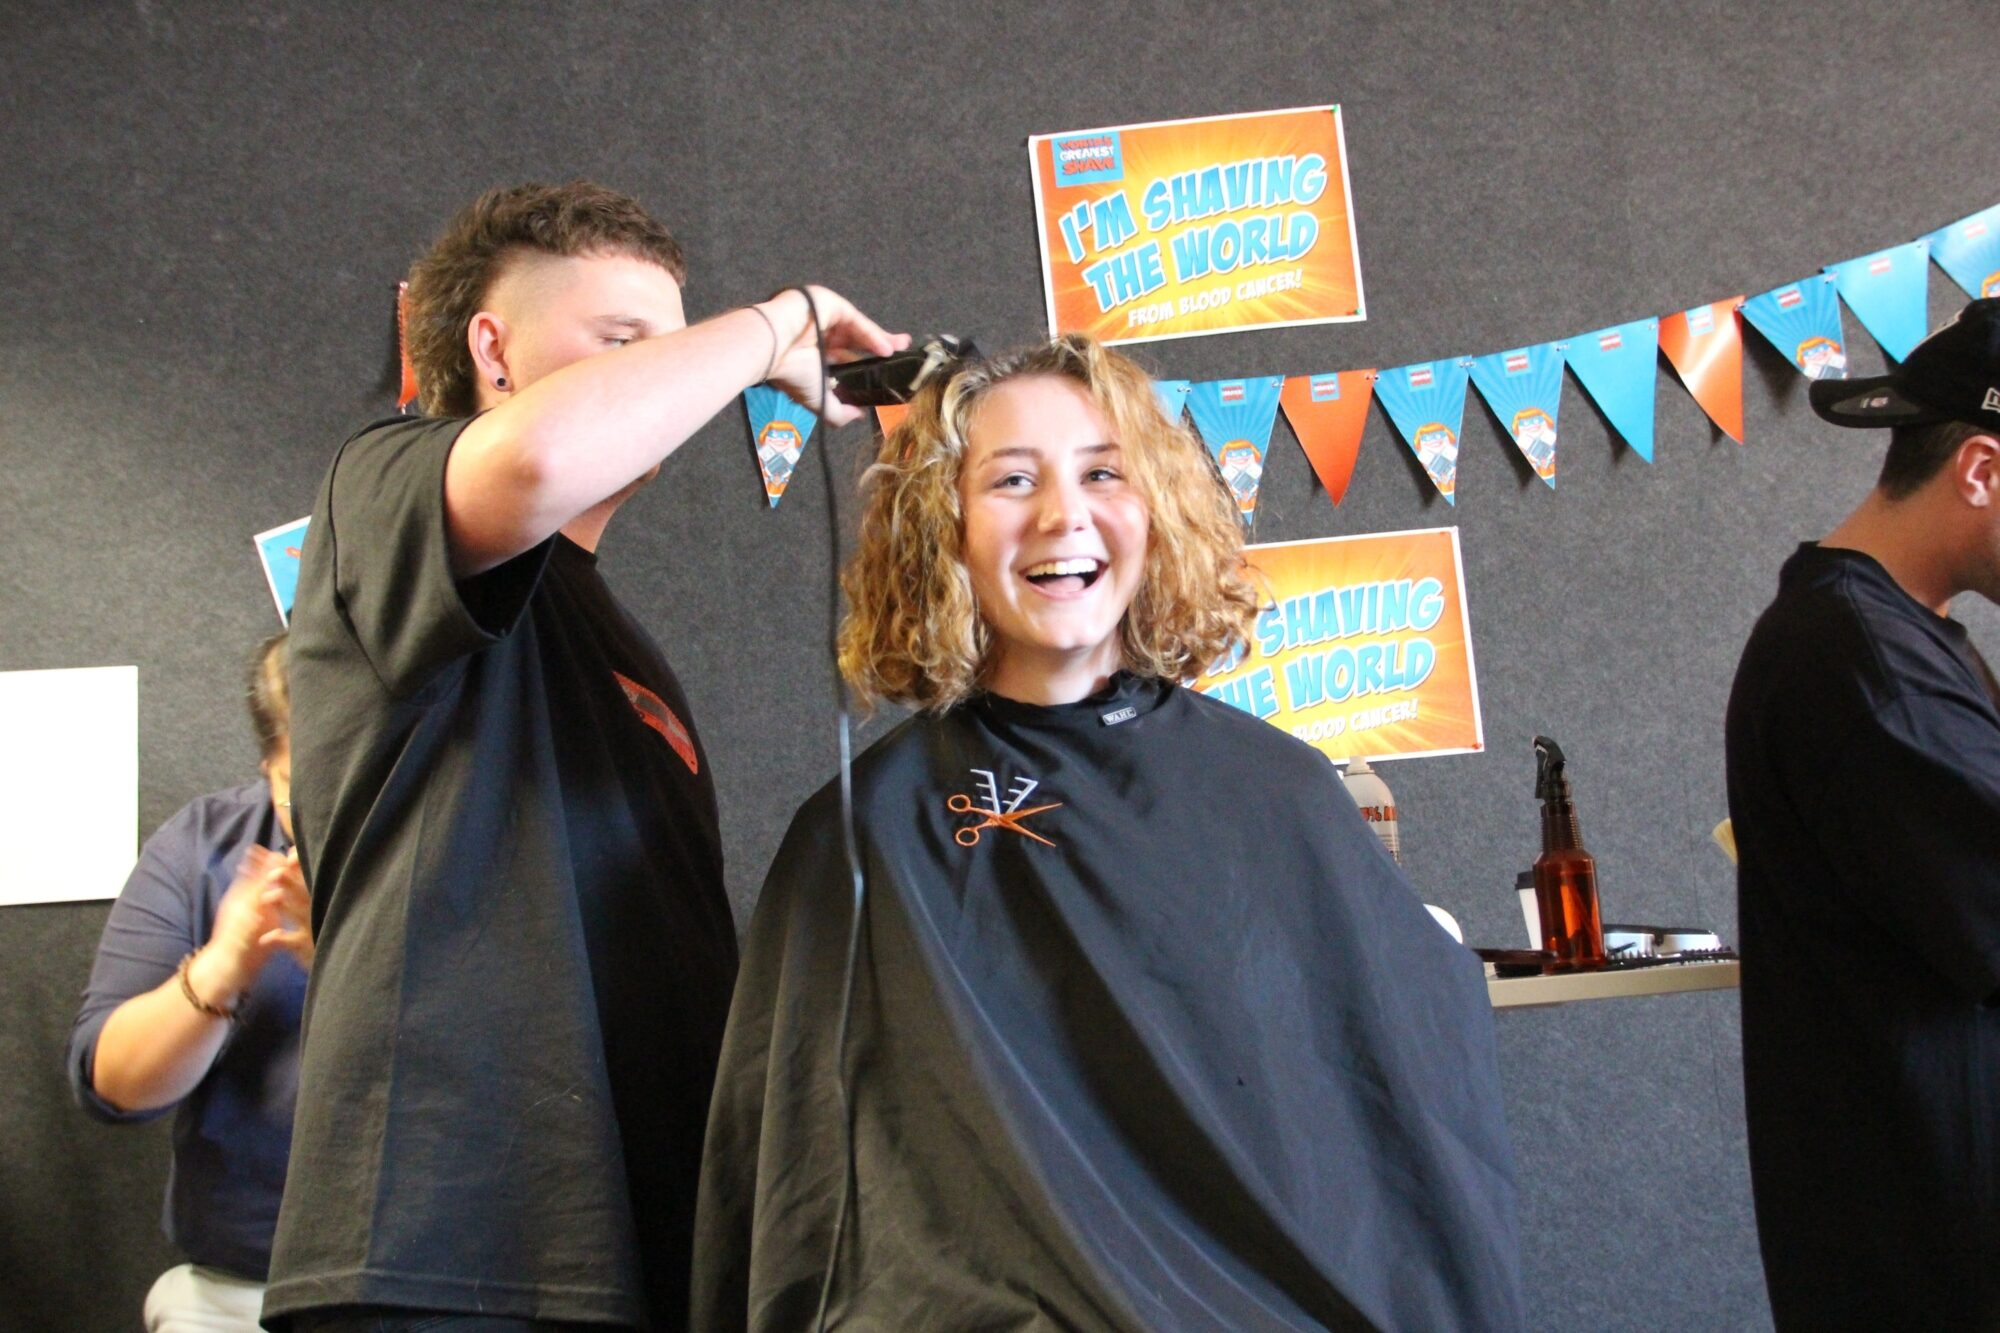 St Georges AGS shave image